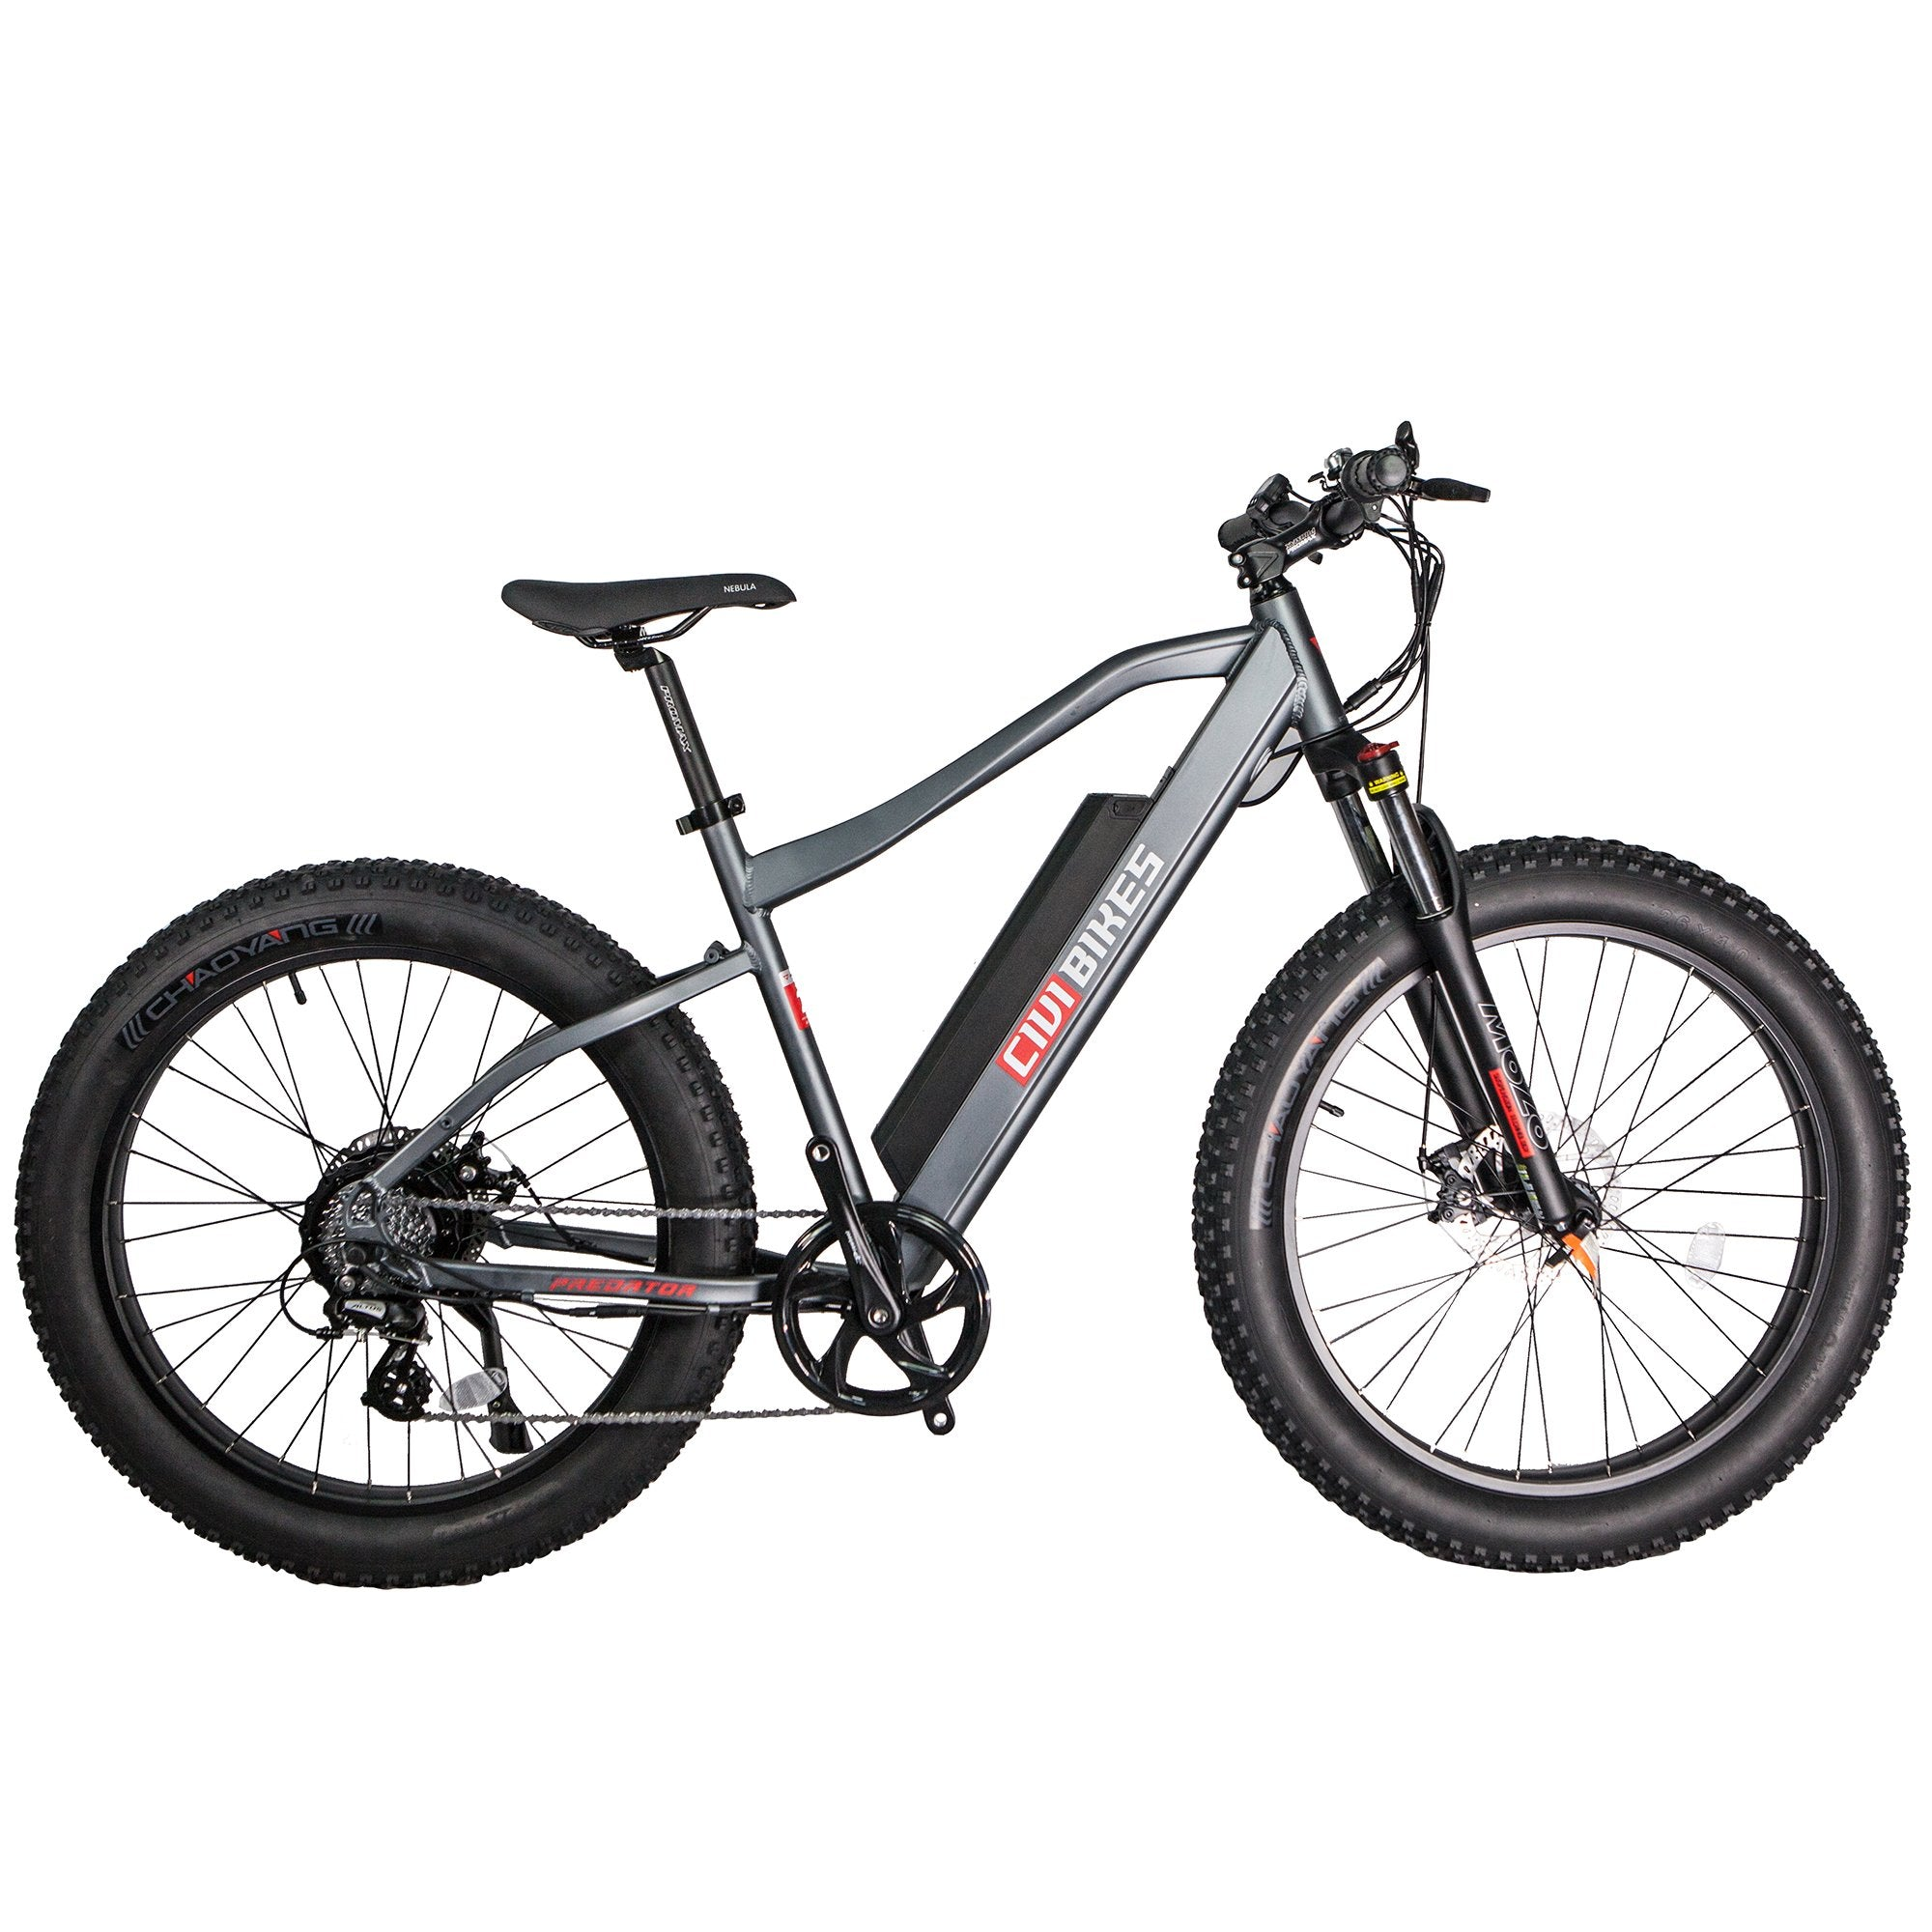 CIVI BIKES PREDATOR Electric Bicycle 2020